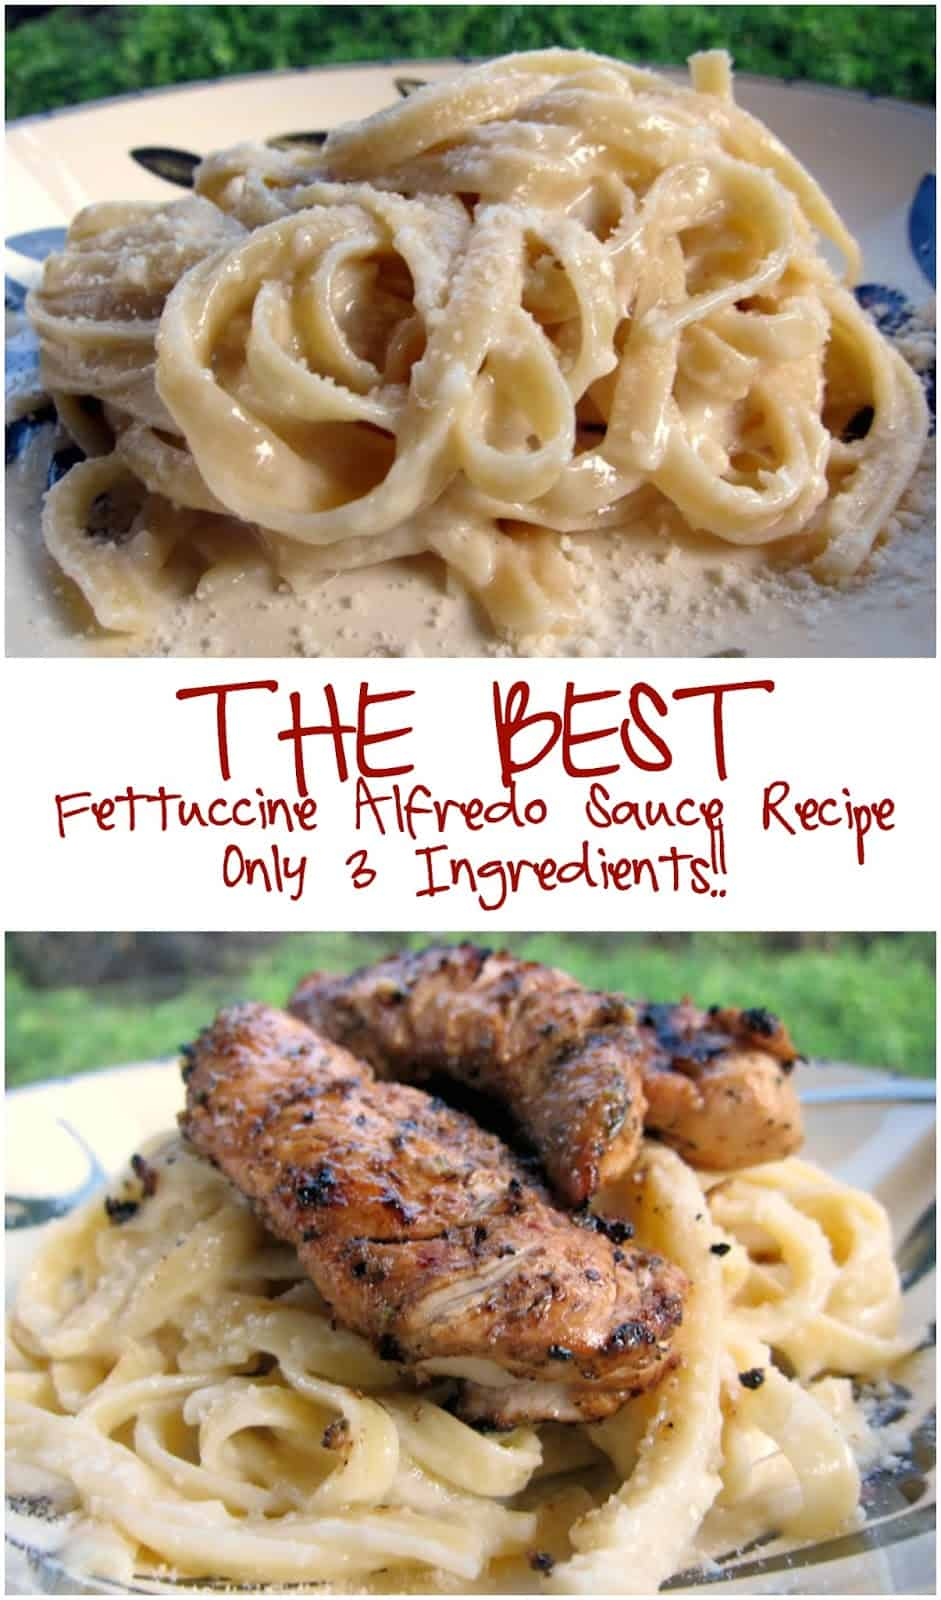 THE BEST Fettuccine Alfredo Sauce Recipe - only 3 ingredients!! Top with grilled chicken for an amazing meal! Better than any restaurant!